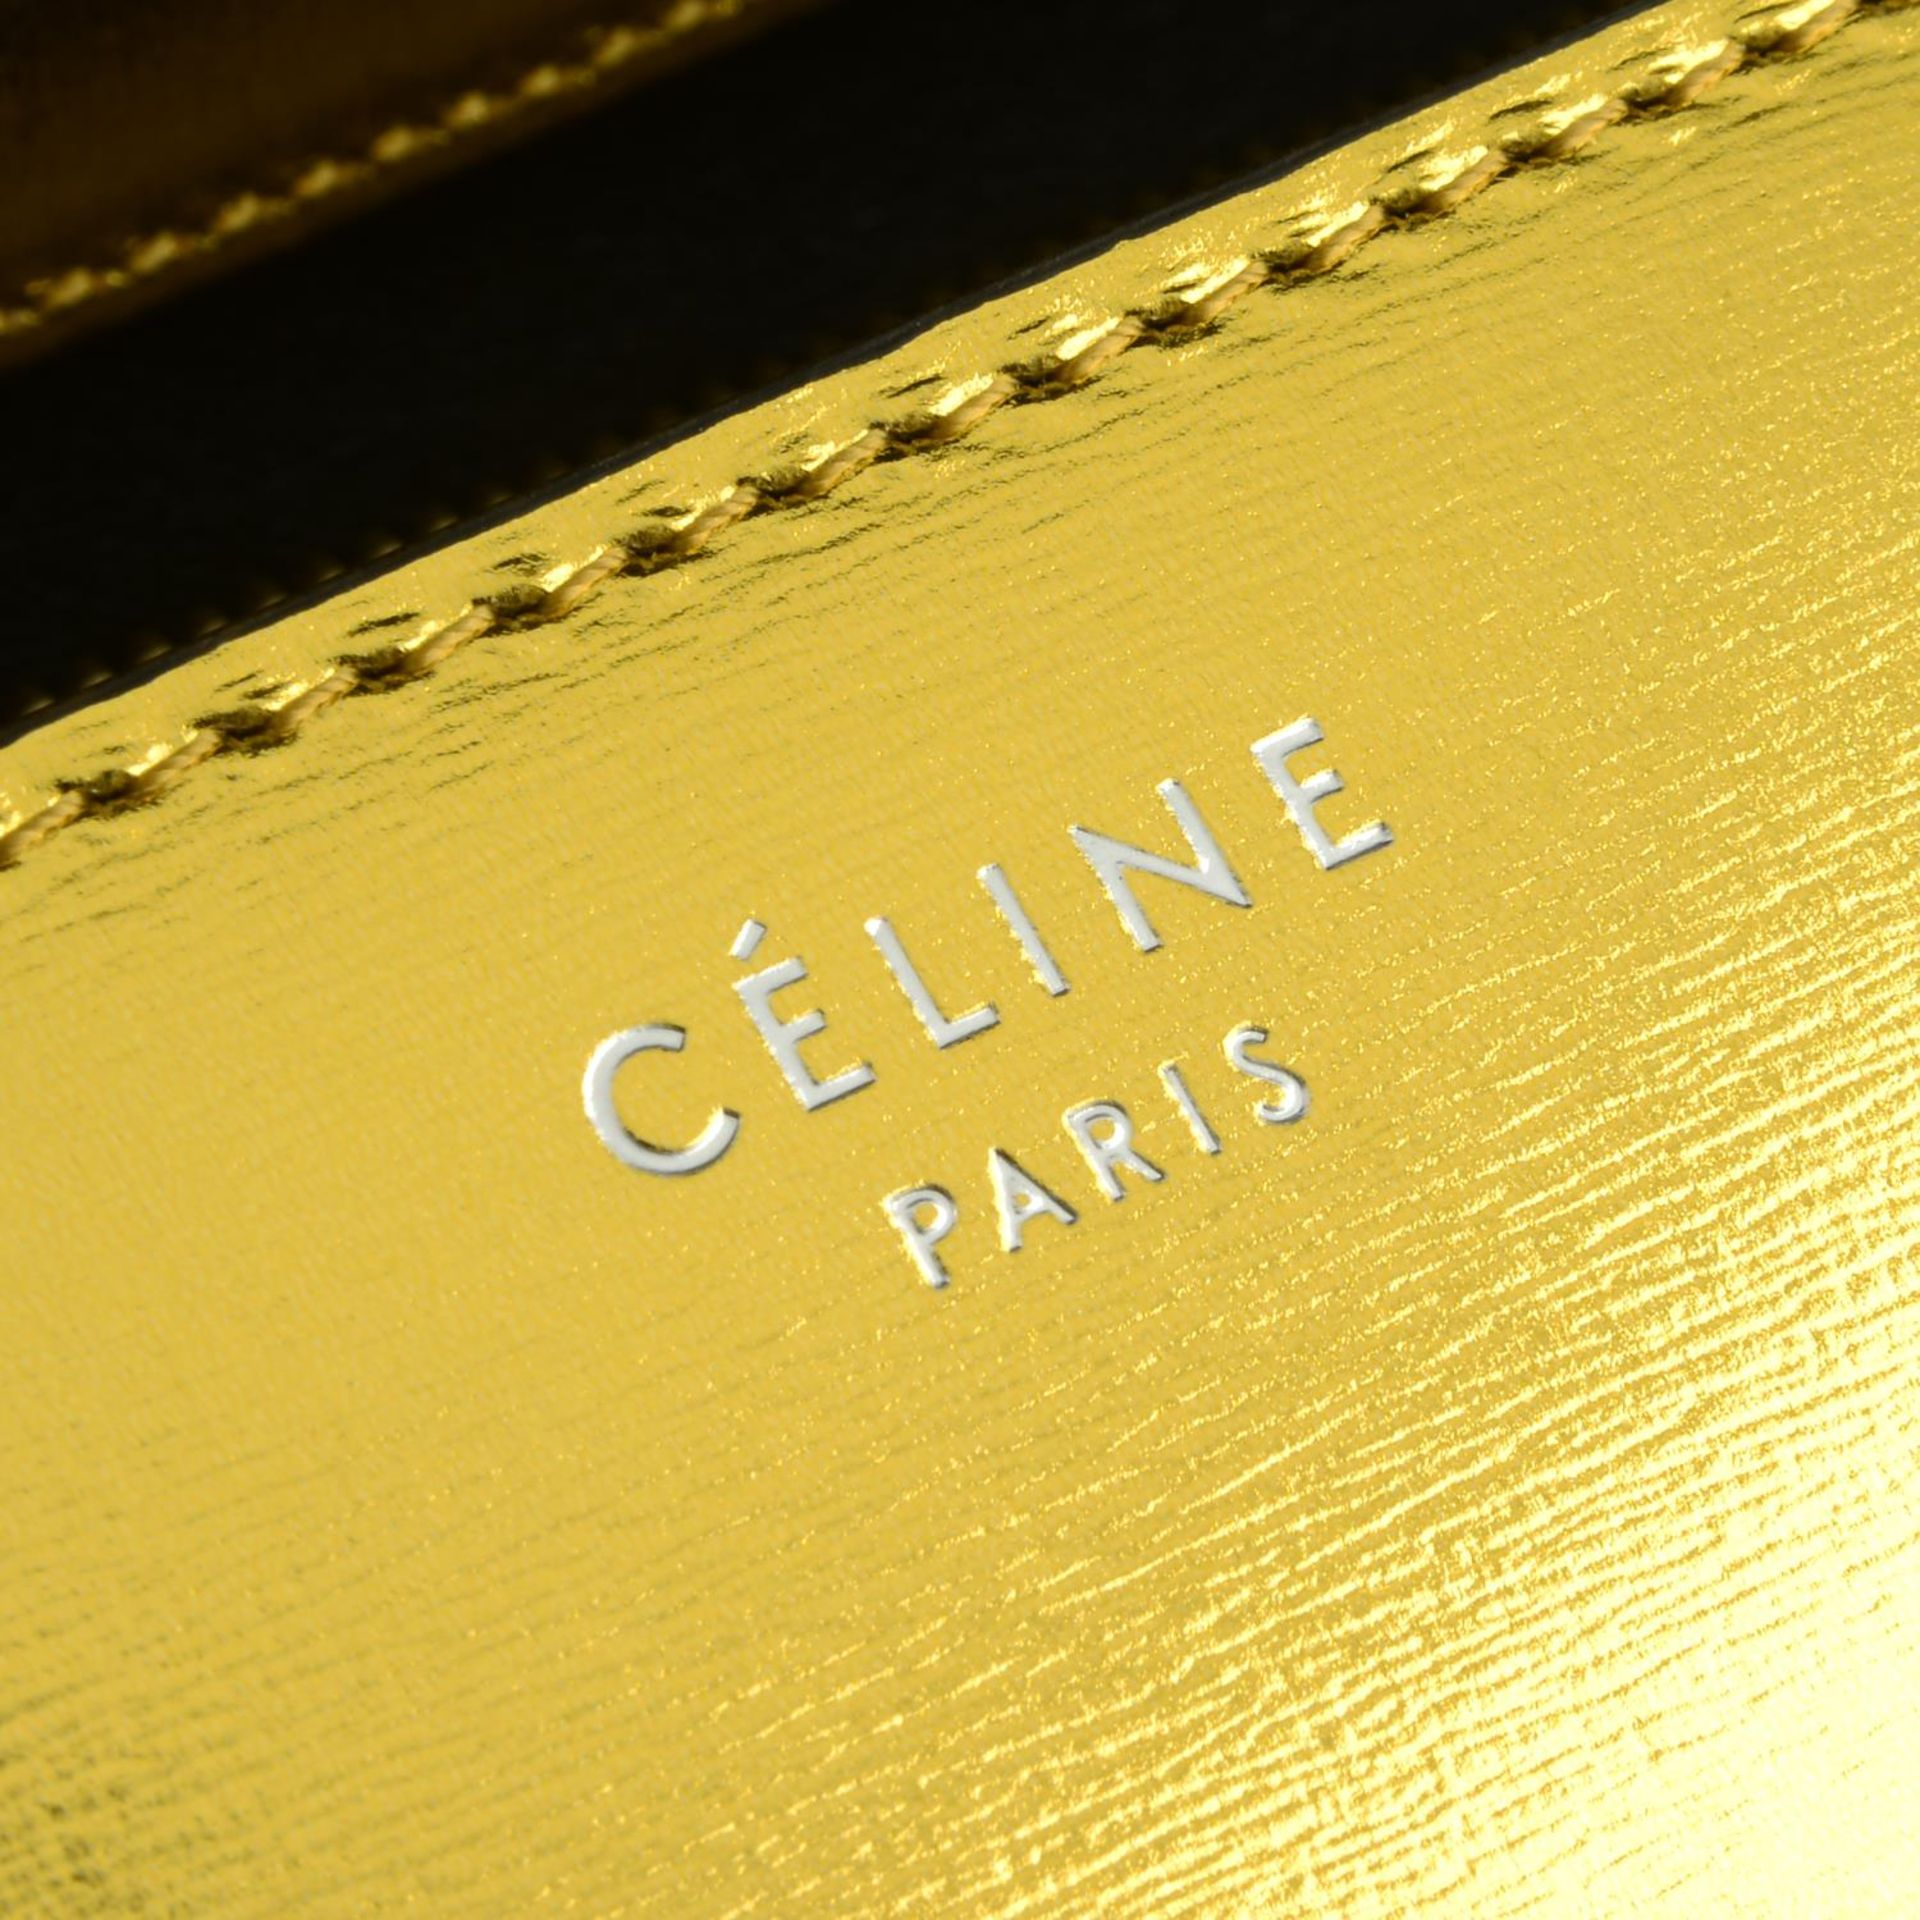 CÉLINE - a metallic gold Box handbag. - Image 7 of 9